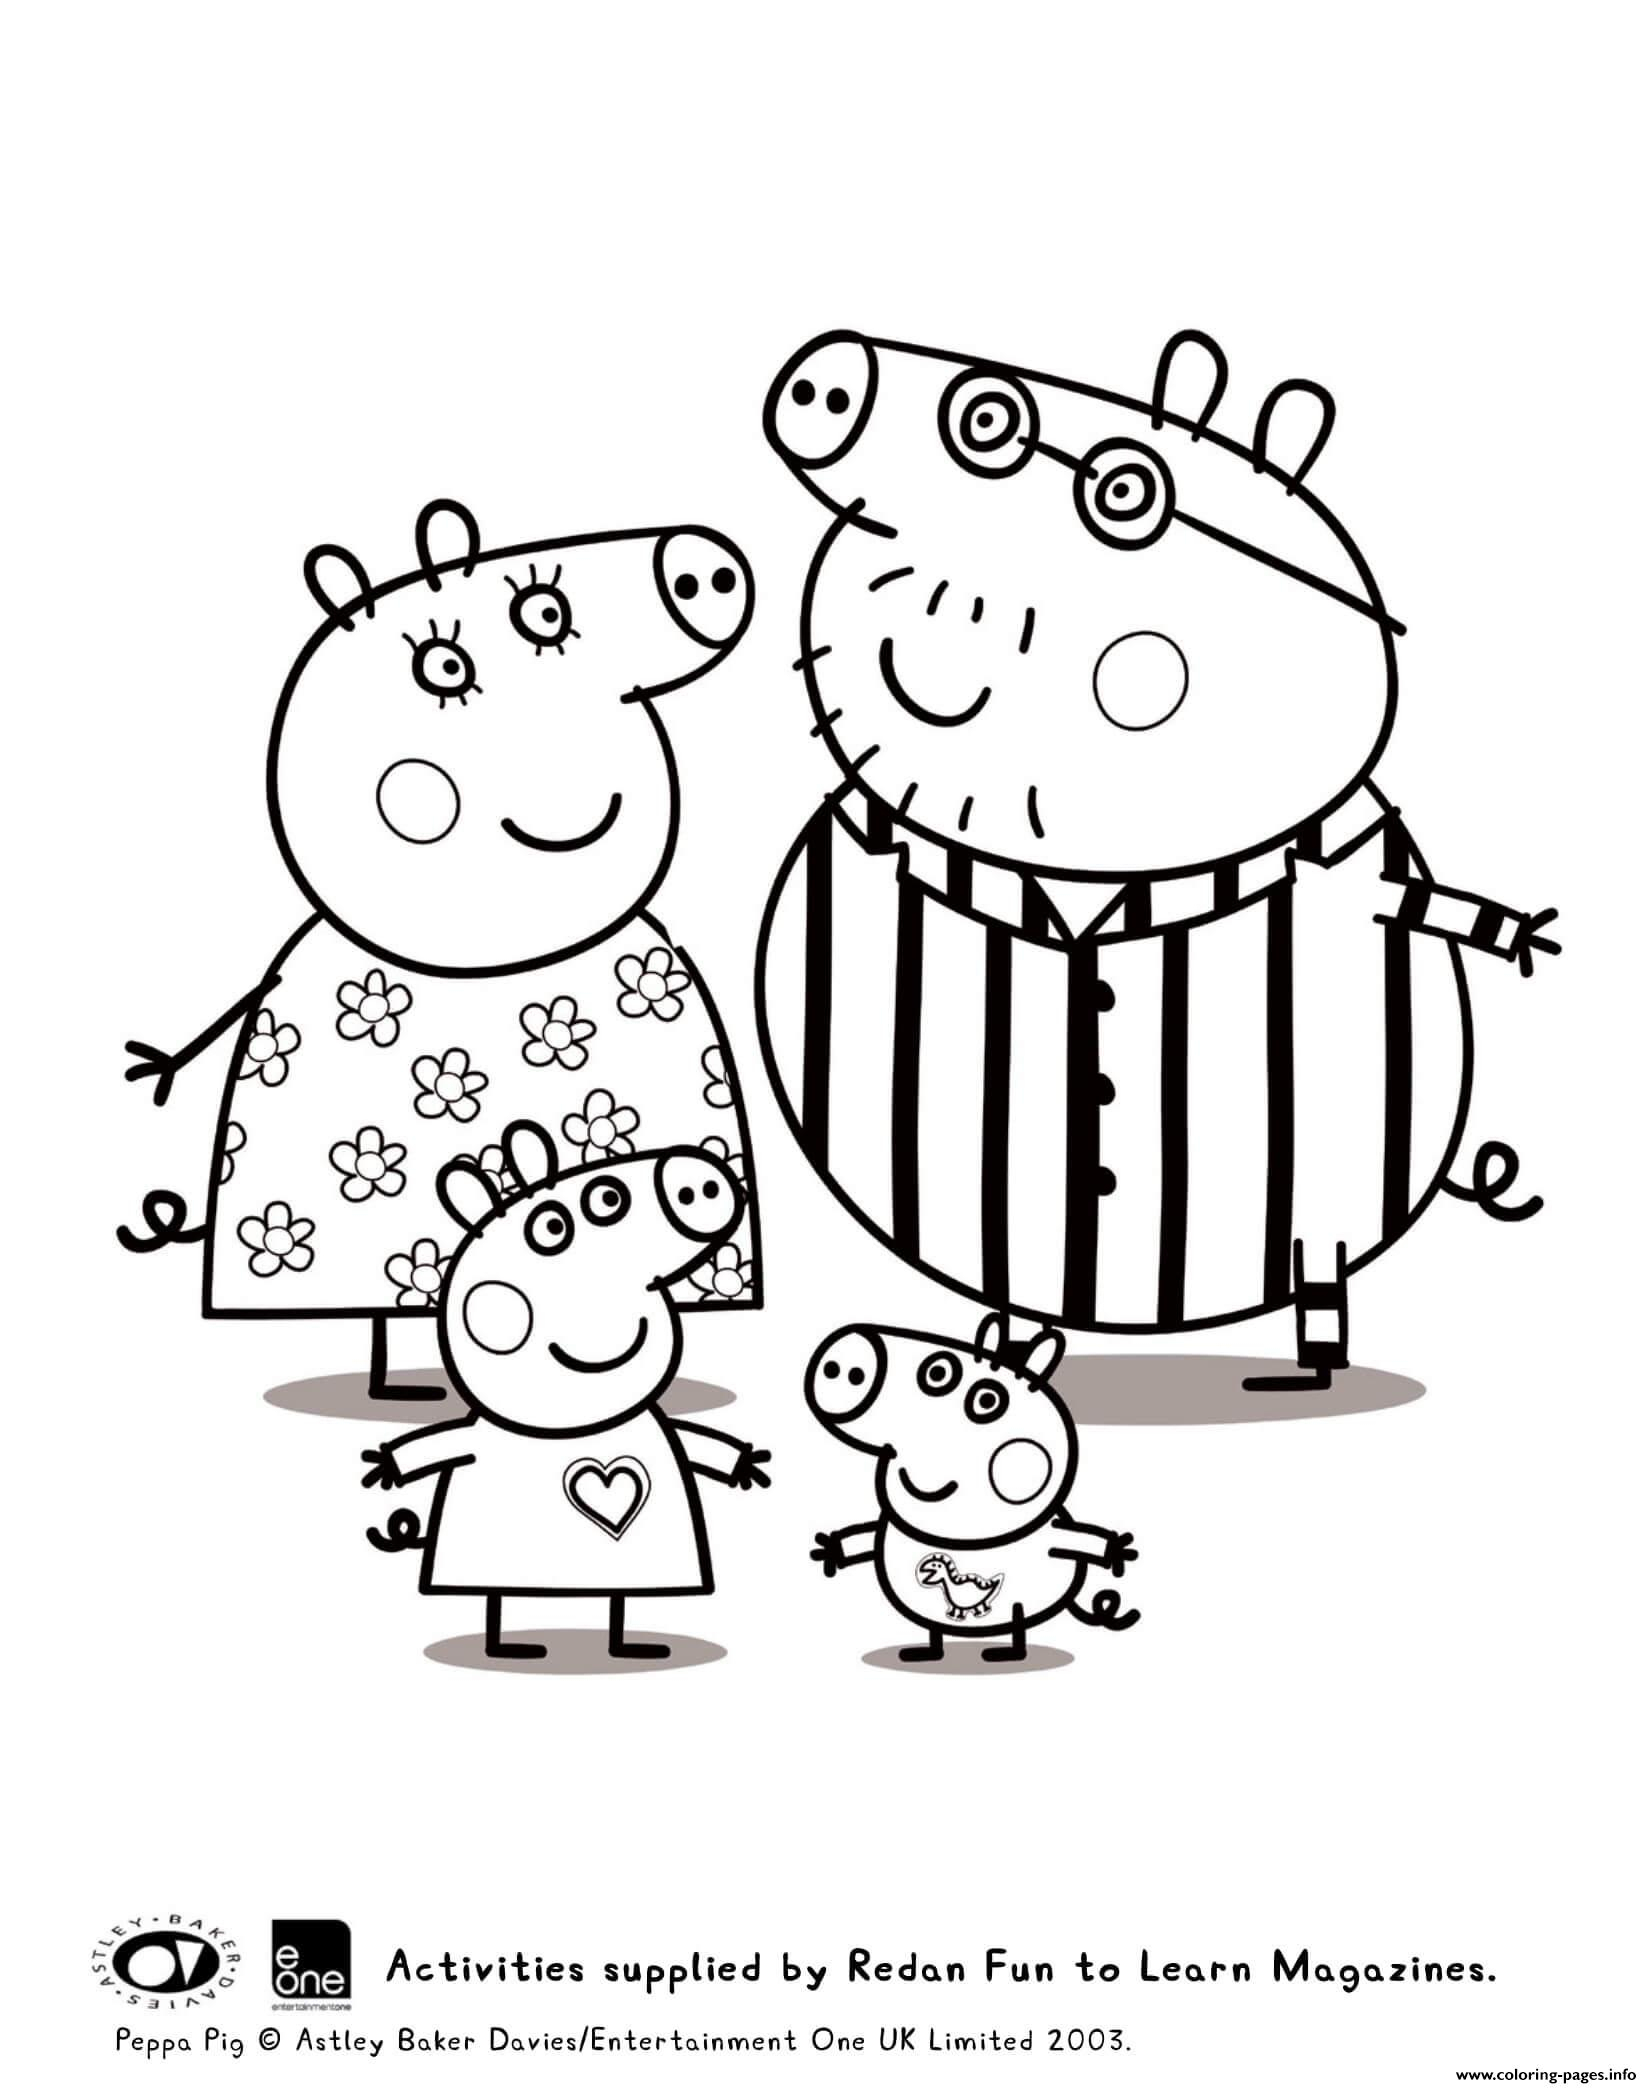 Coloring Pages : Coloring Peppa And Family Pyjama Pig intérieur Peppa Pig A Colorier